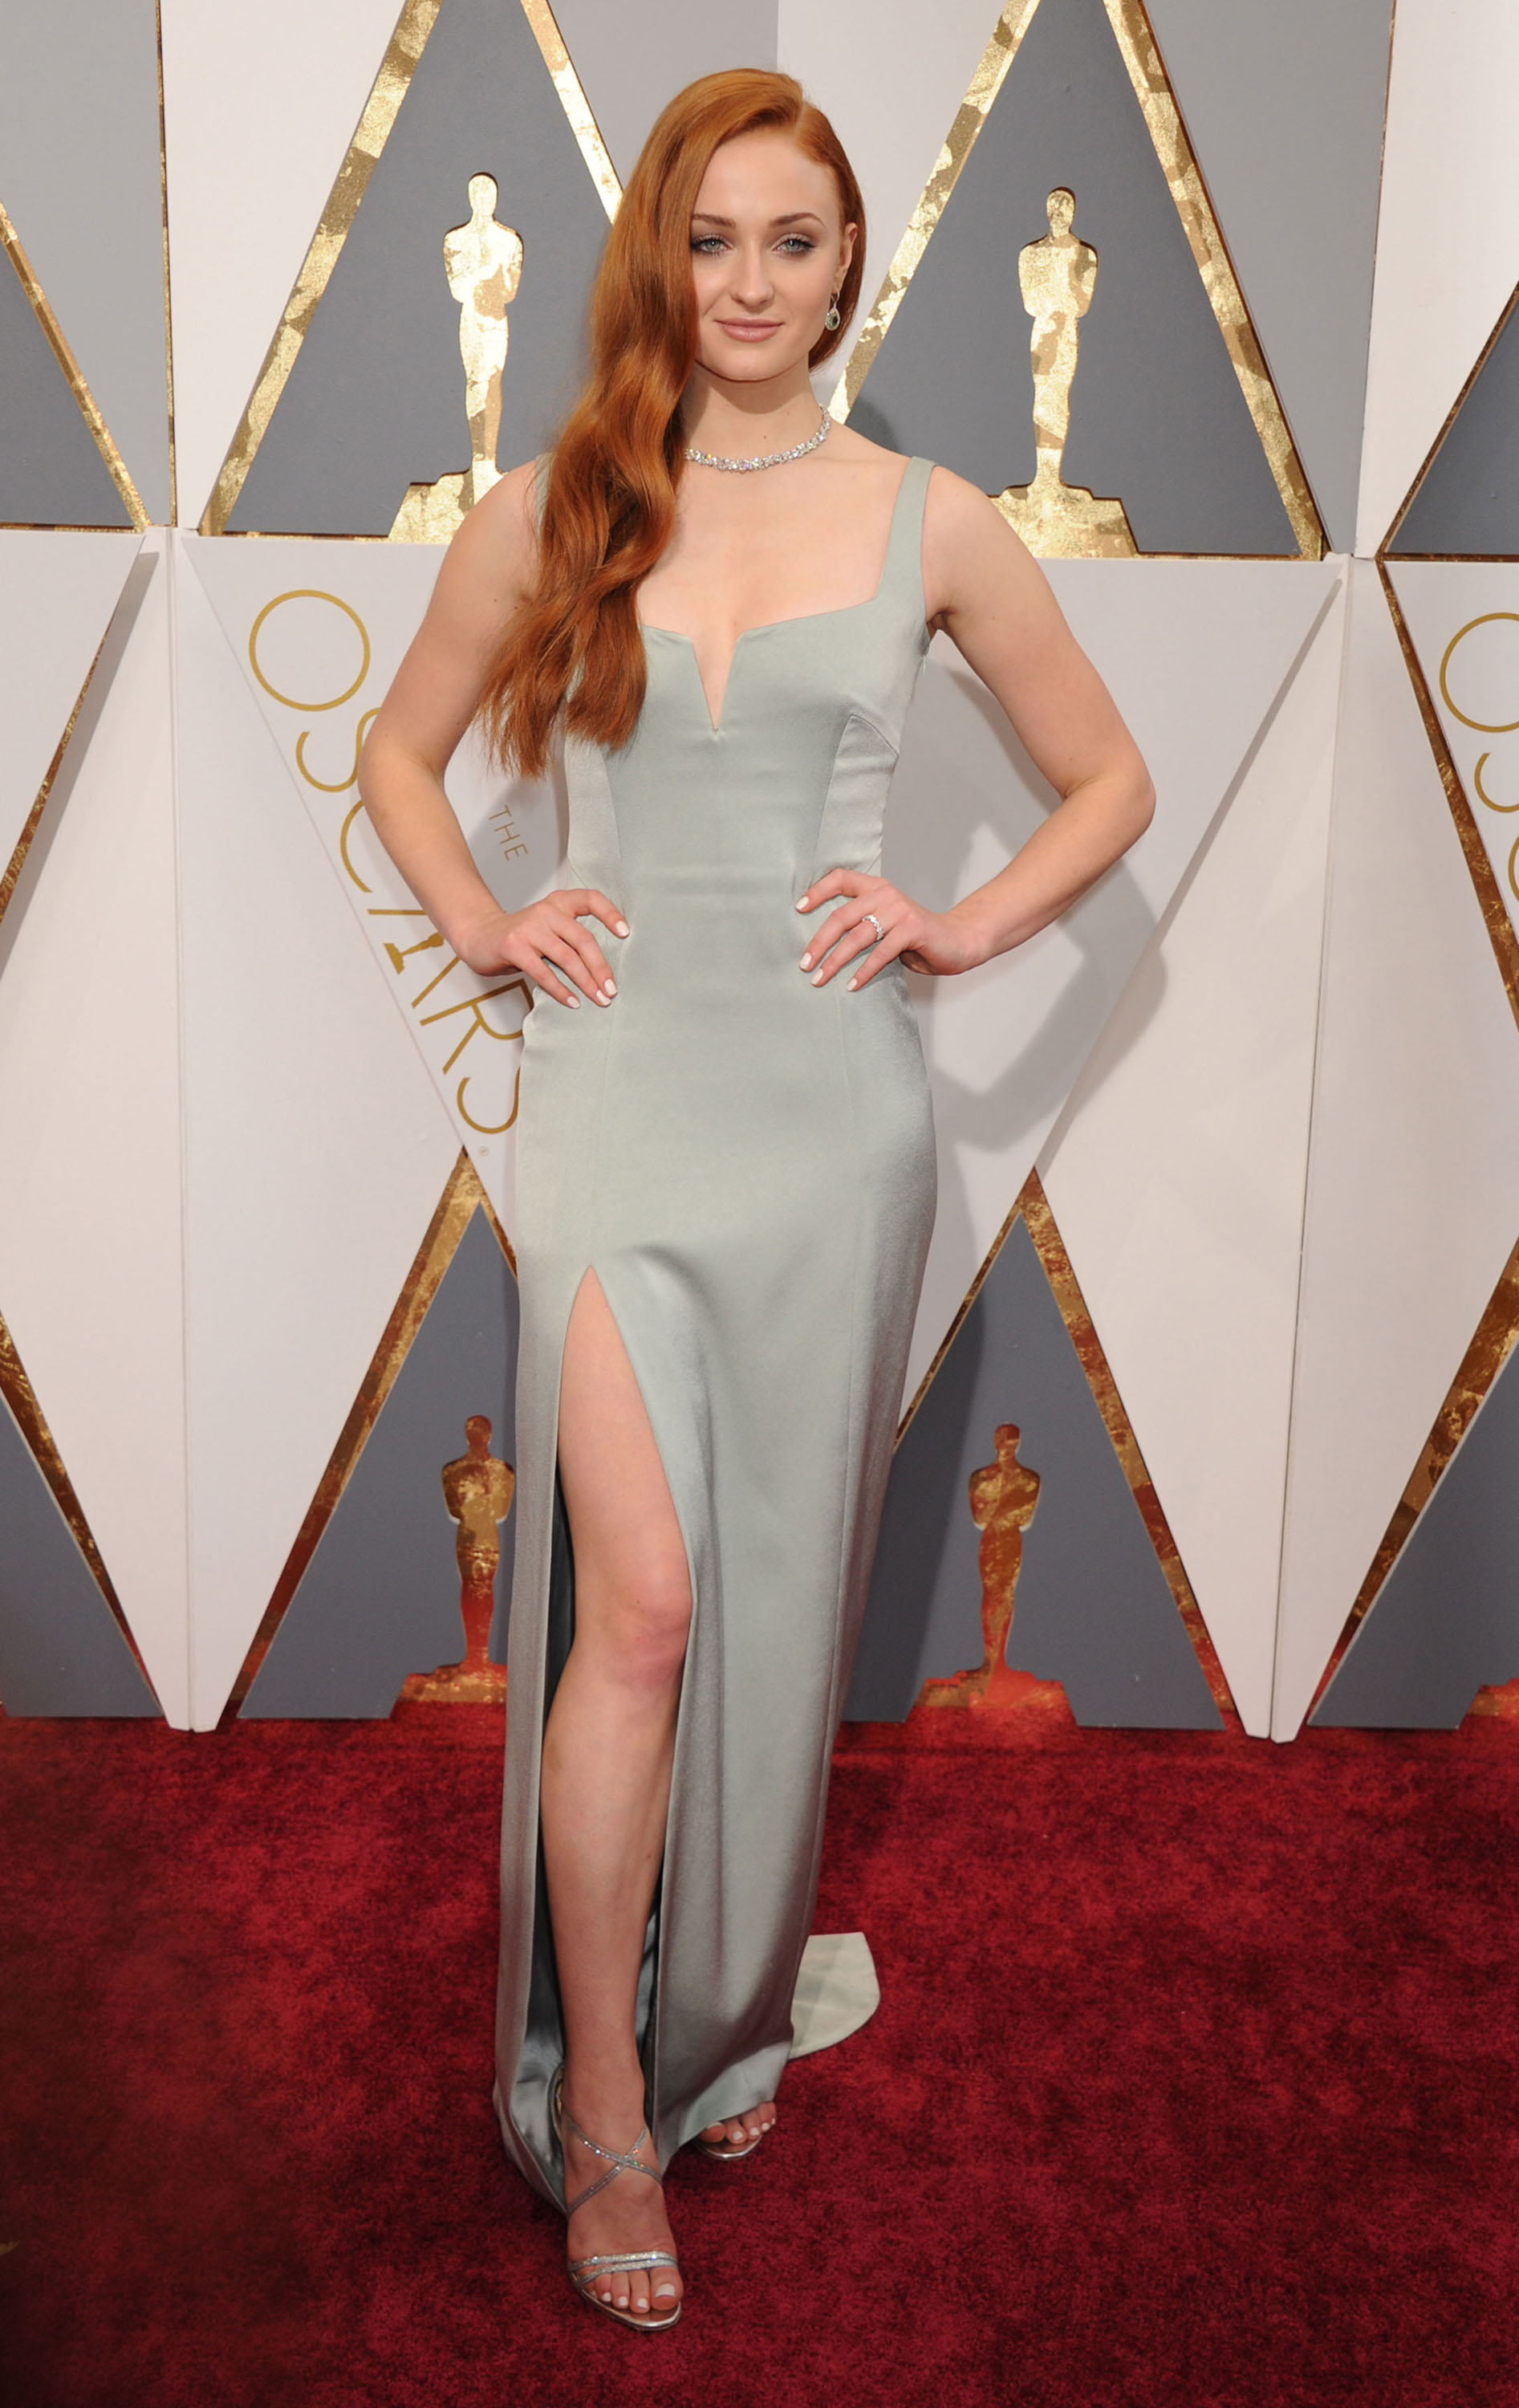 Wallpaper For Iphone 6 Fall Oscars Fug Or Fab Sophie Turner In Galvan Go Fug Yourself